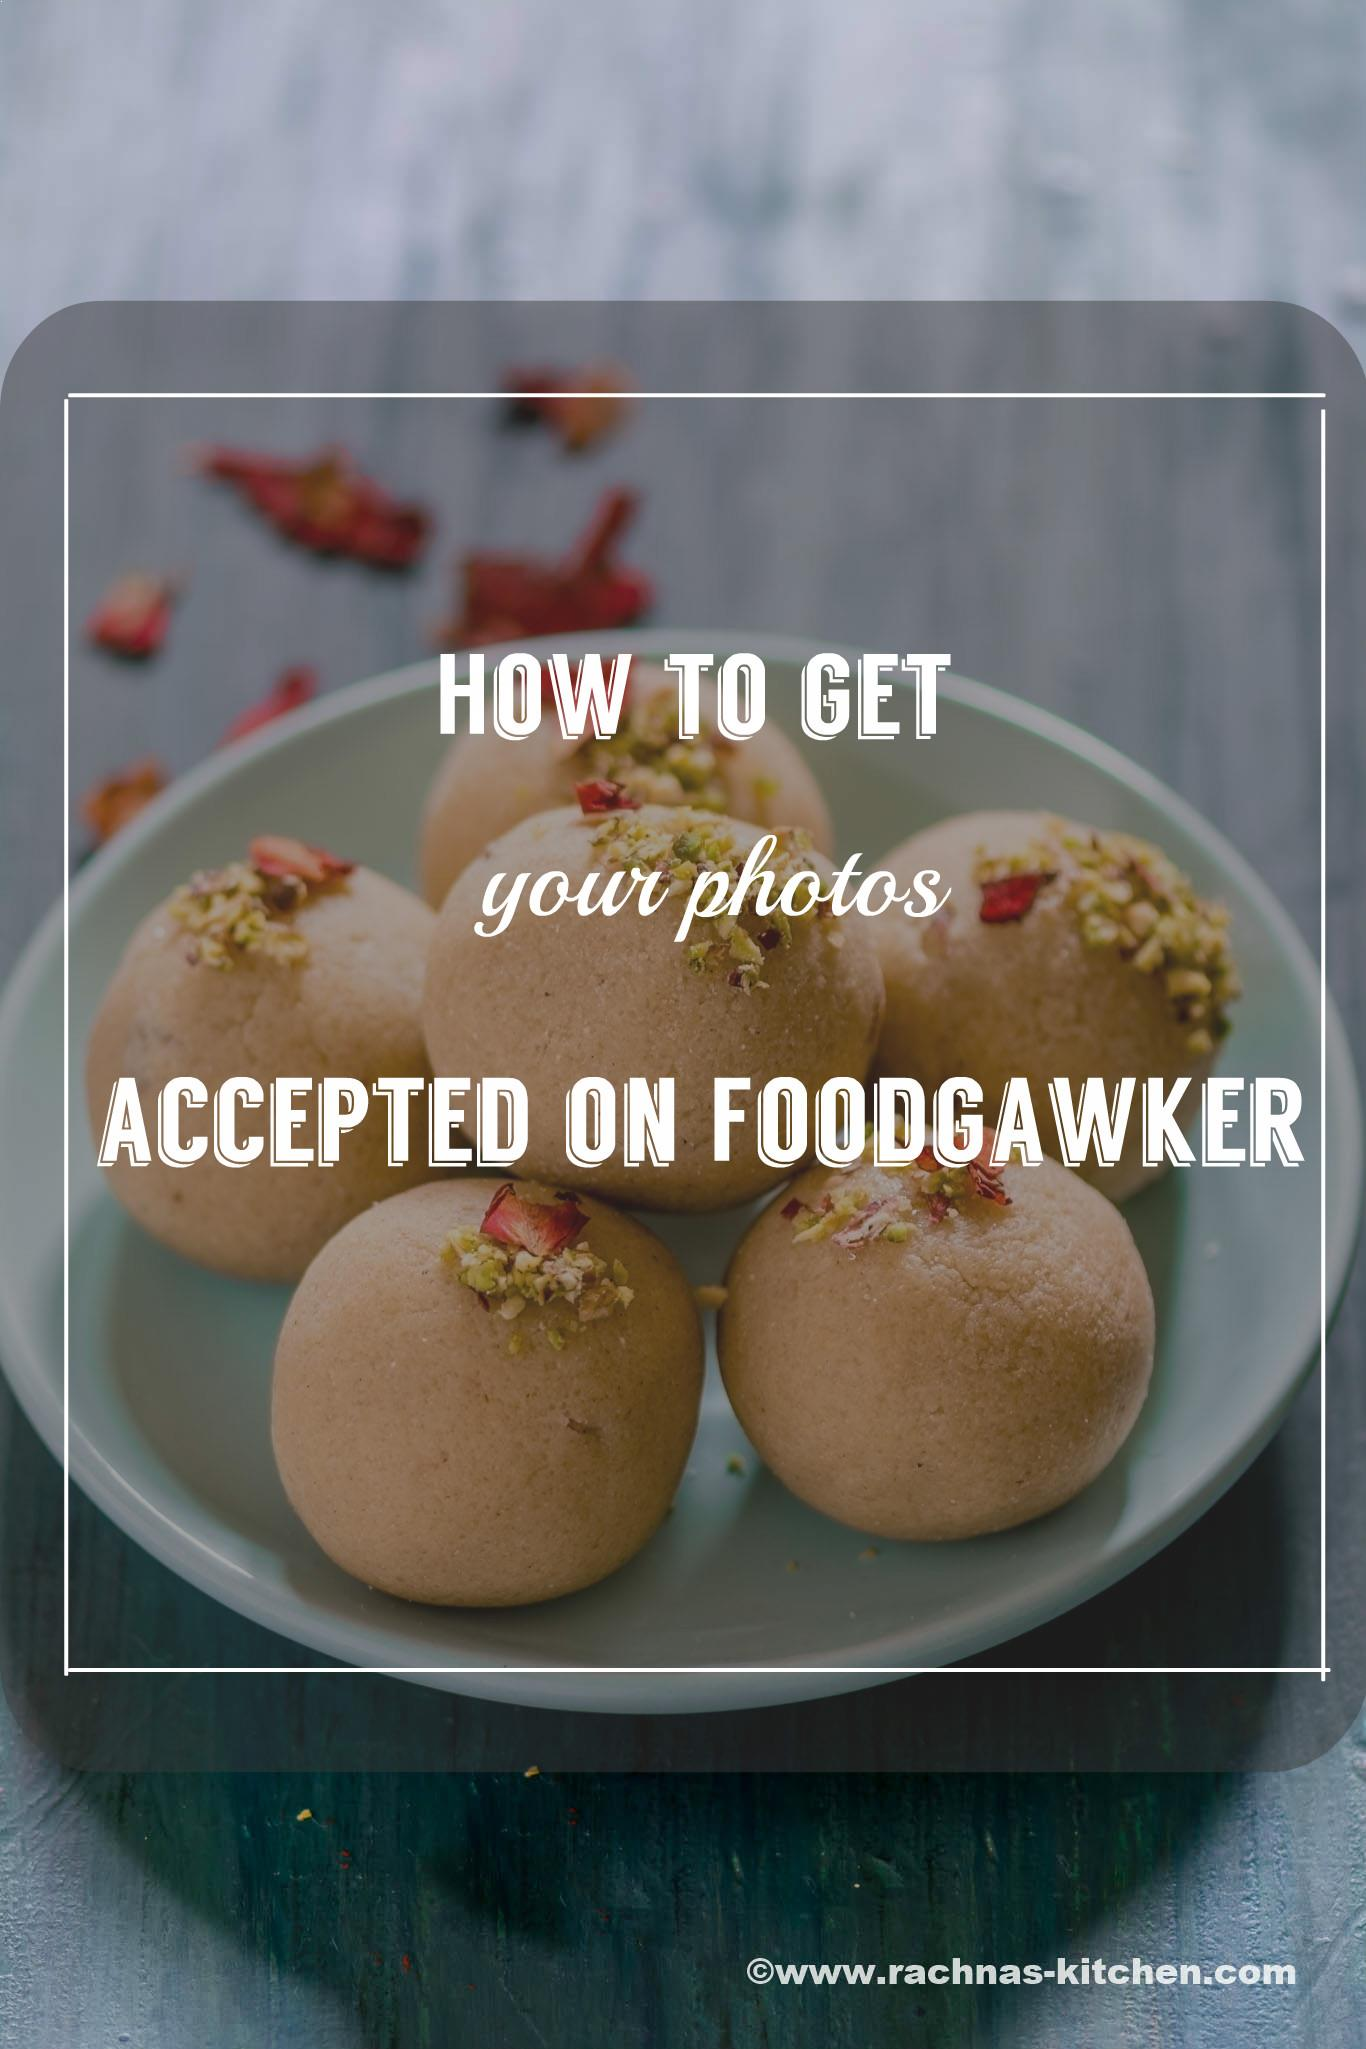 How to get your photos accepted by foodgawker